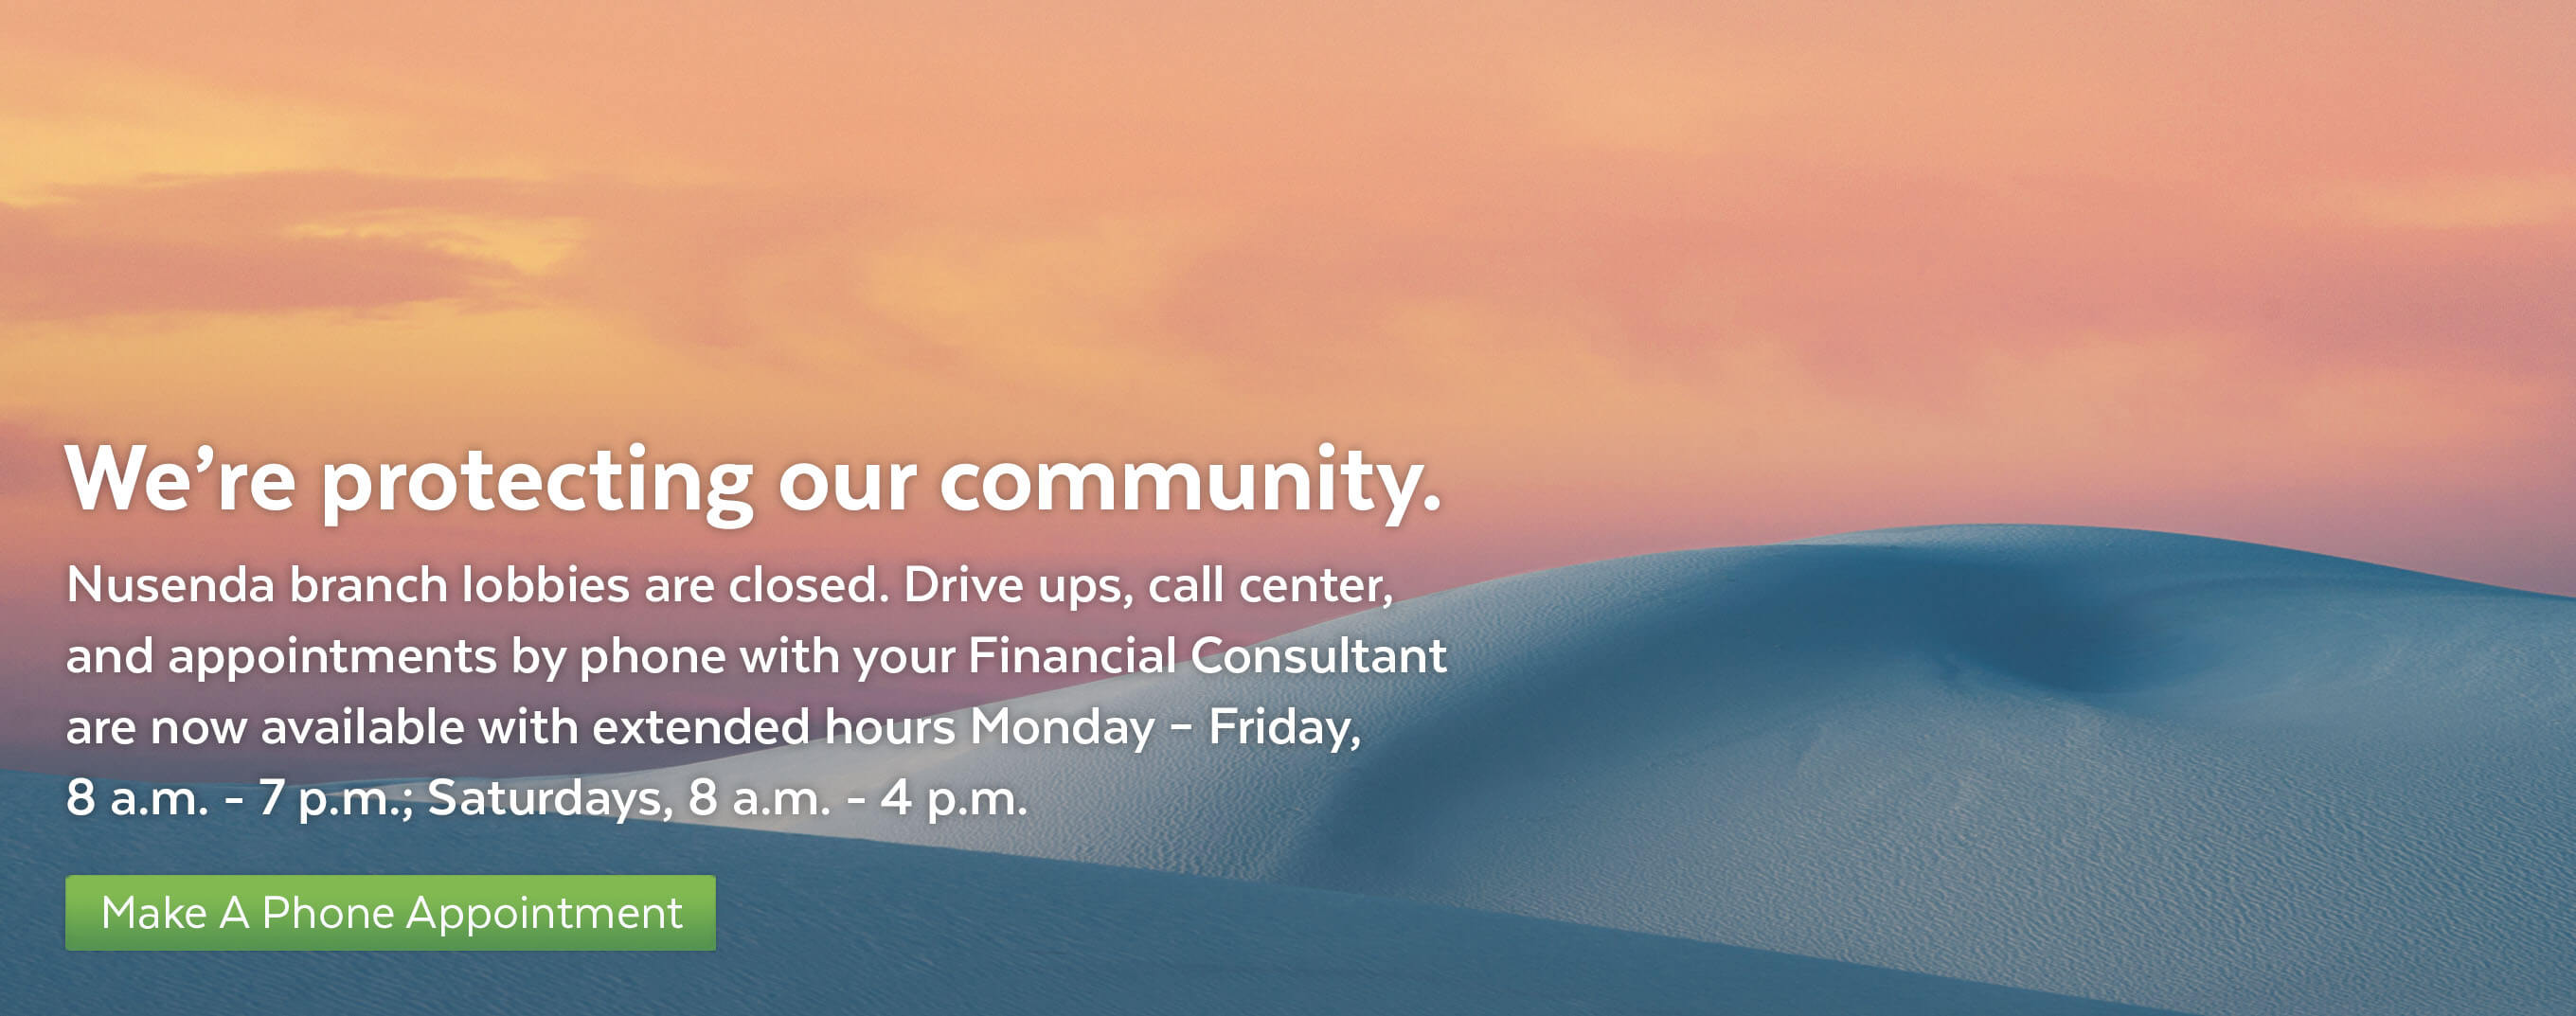 Nusenda branch lobbies are temporarily closed. Make an appointment to speak with a Financial Consultant.